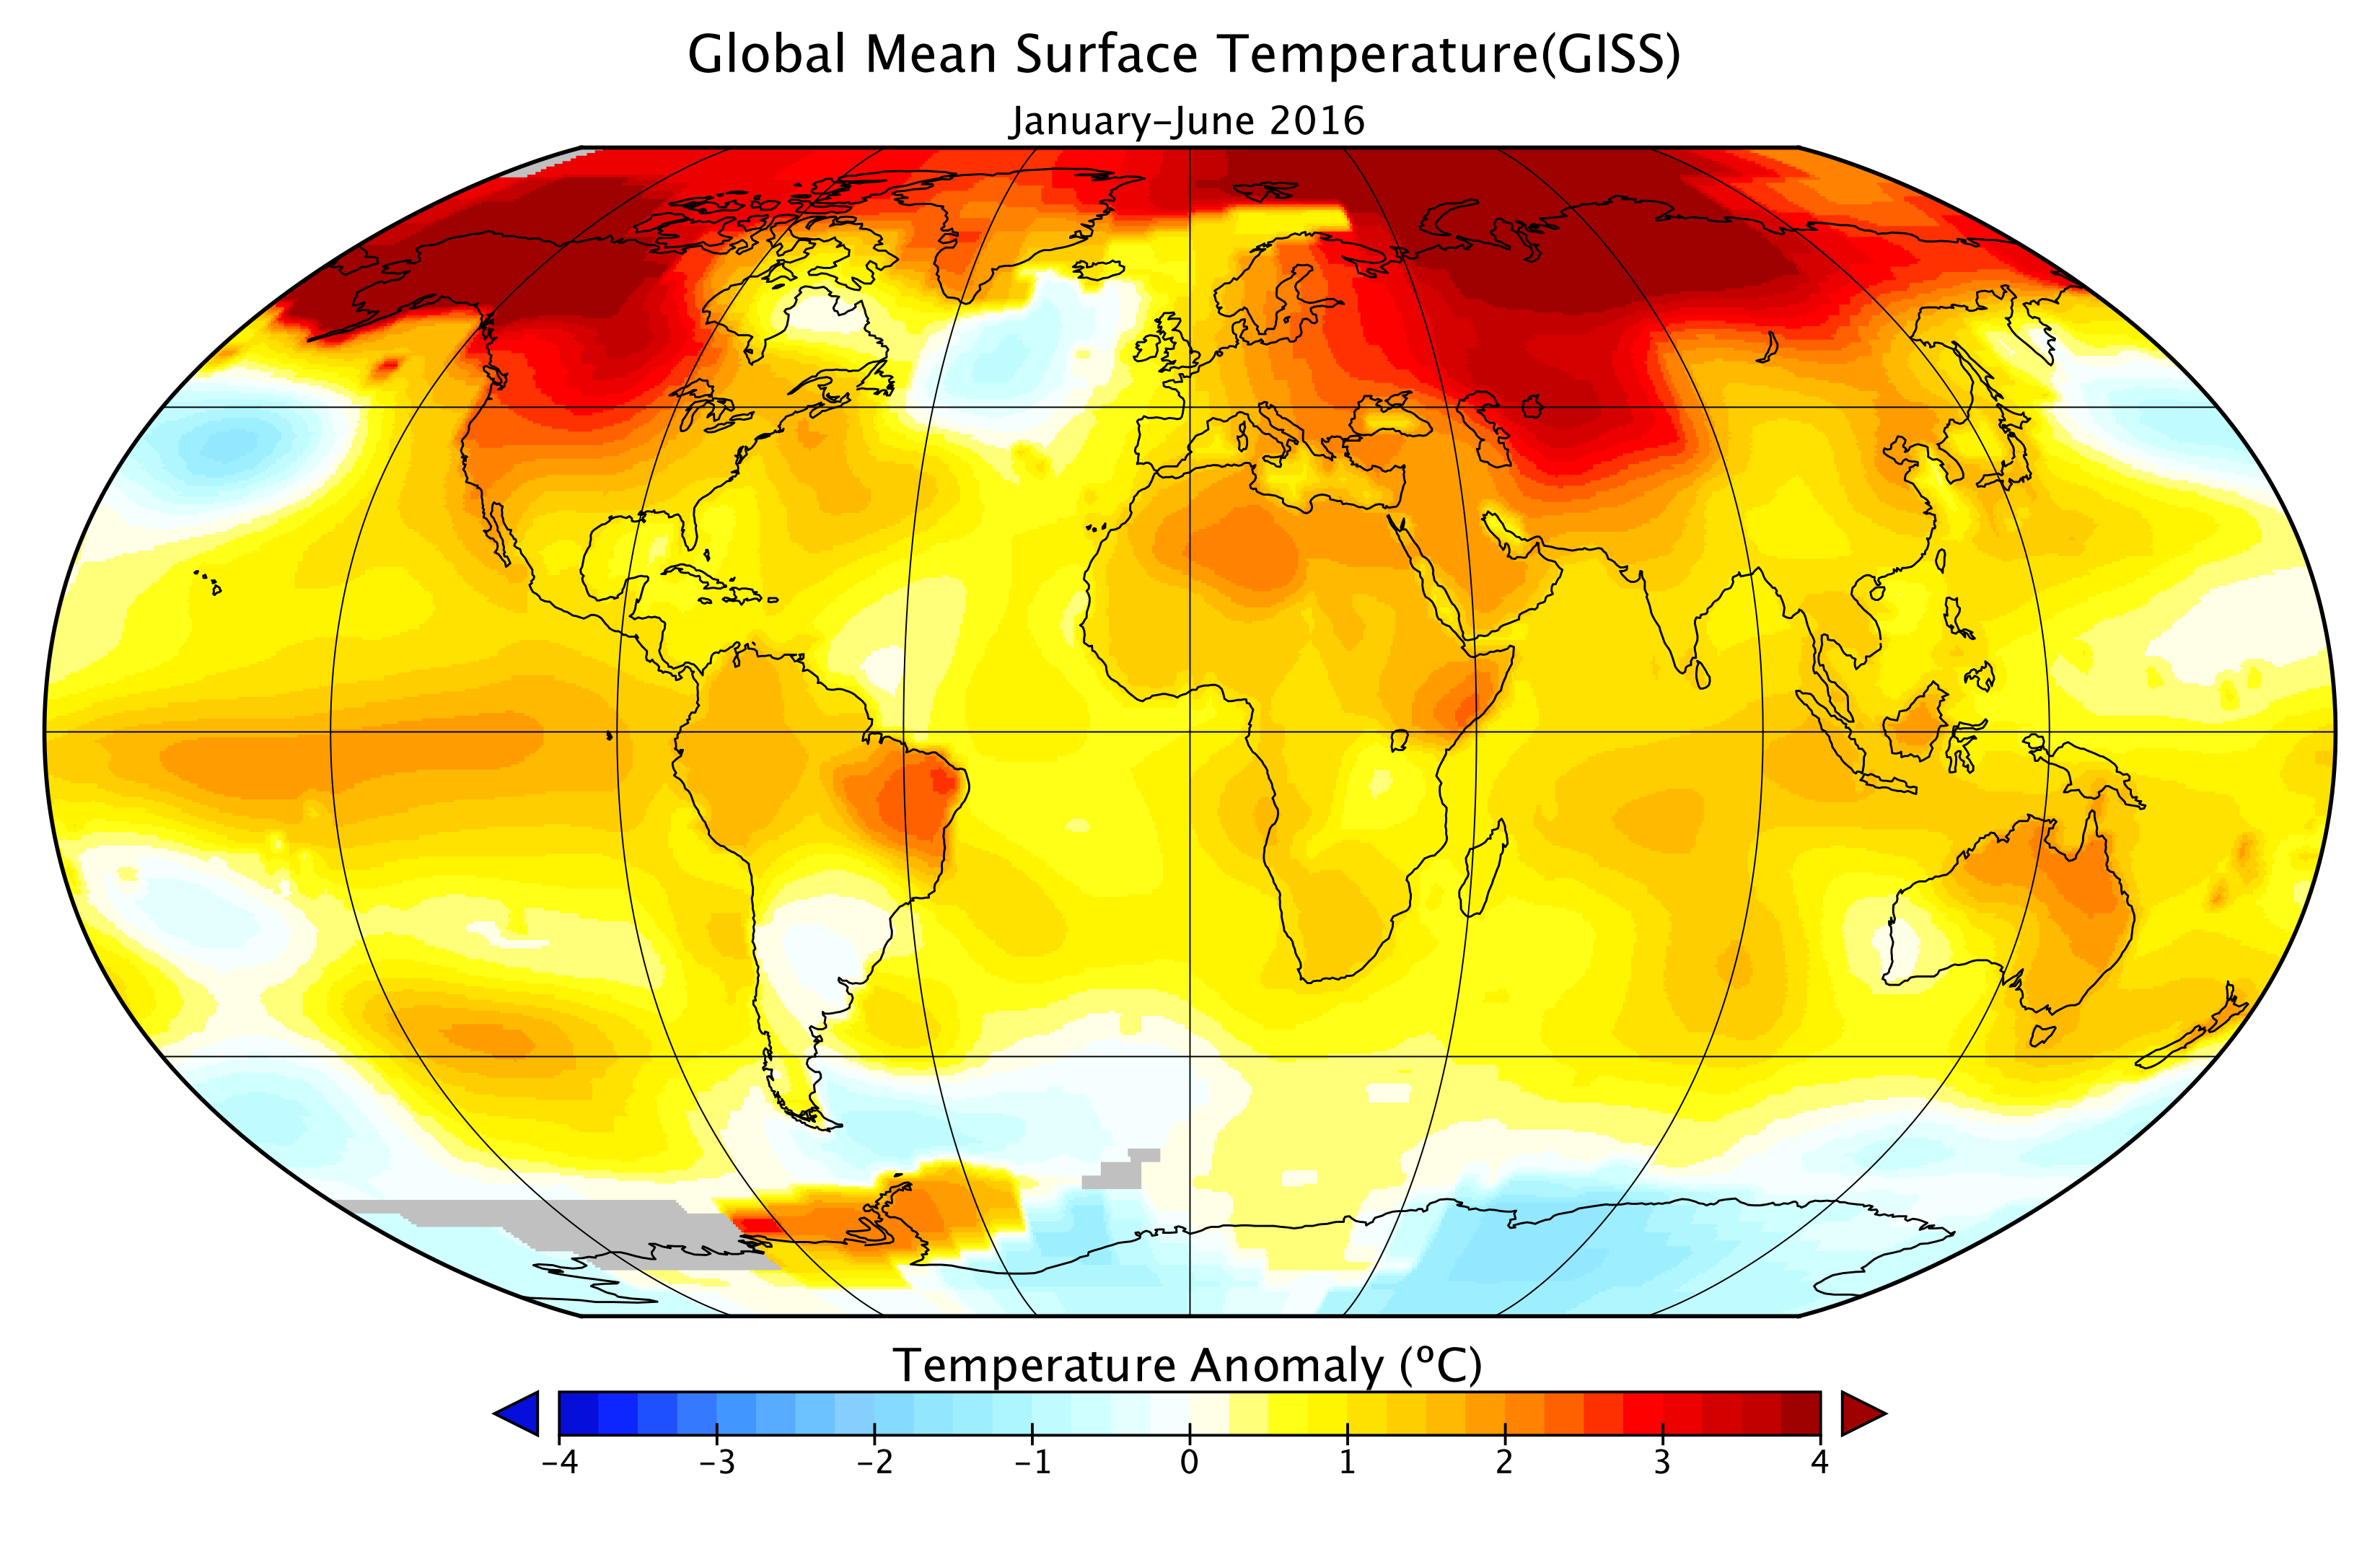 Gms record breaking climate trends briefing july 19 2016 3299x2158 png 13 mb publicscrutiny Image collections